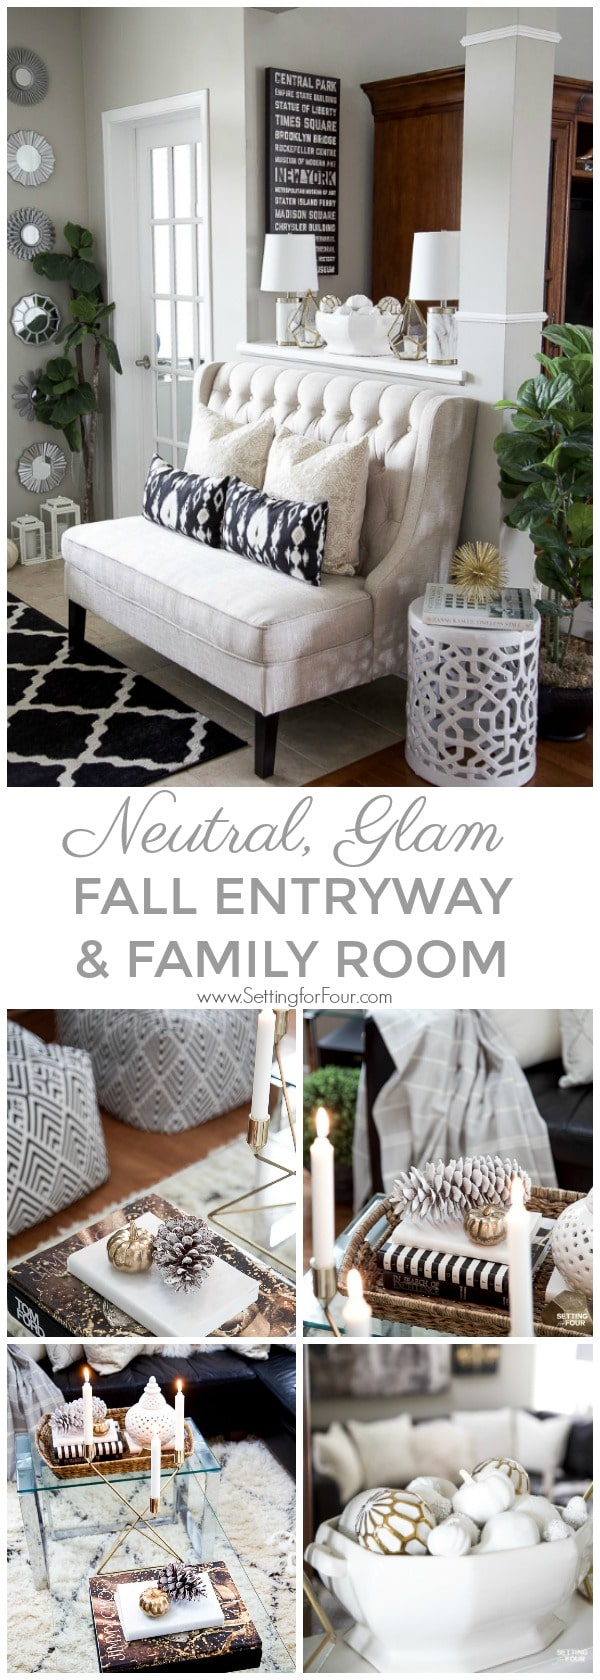 Neutral, Glam Entryway and Family Room Decor Ideas. Furniture, lighting, area rugs, pillows, fall decor and more!